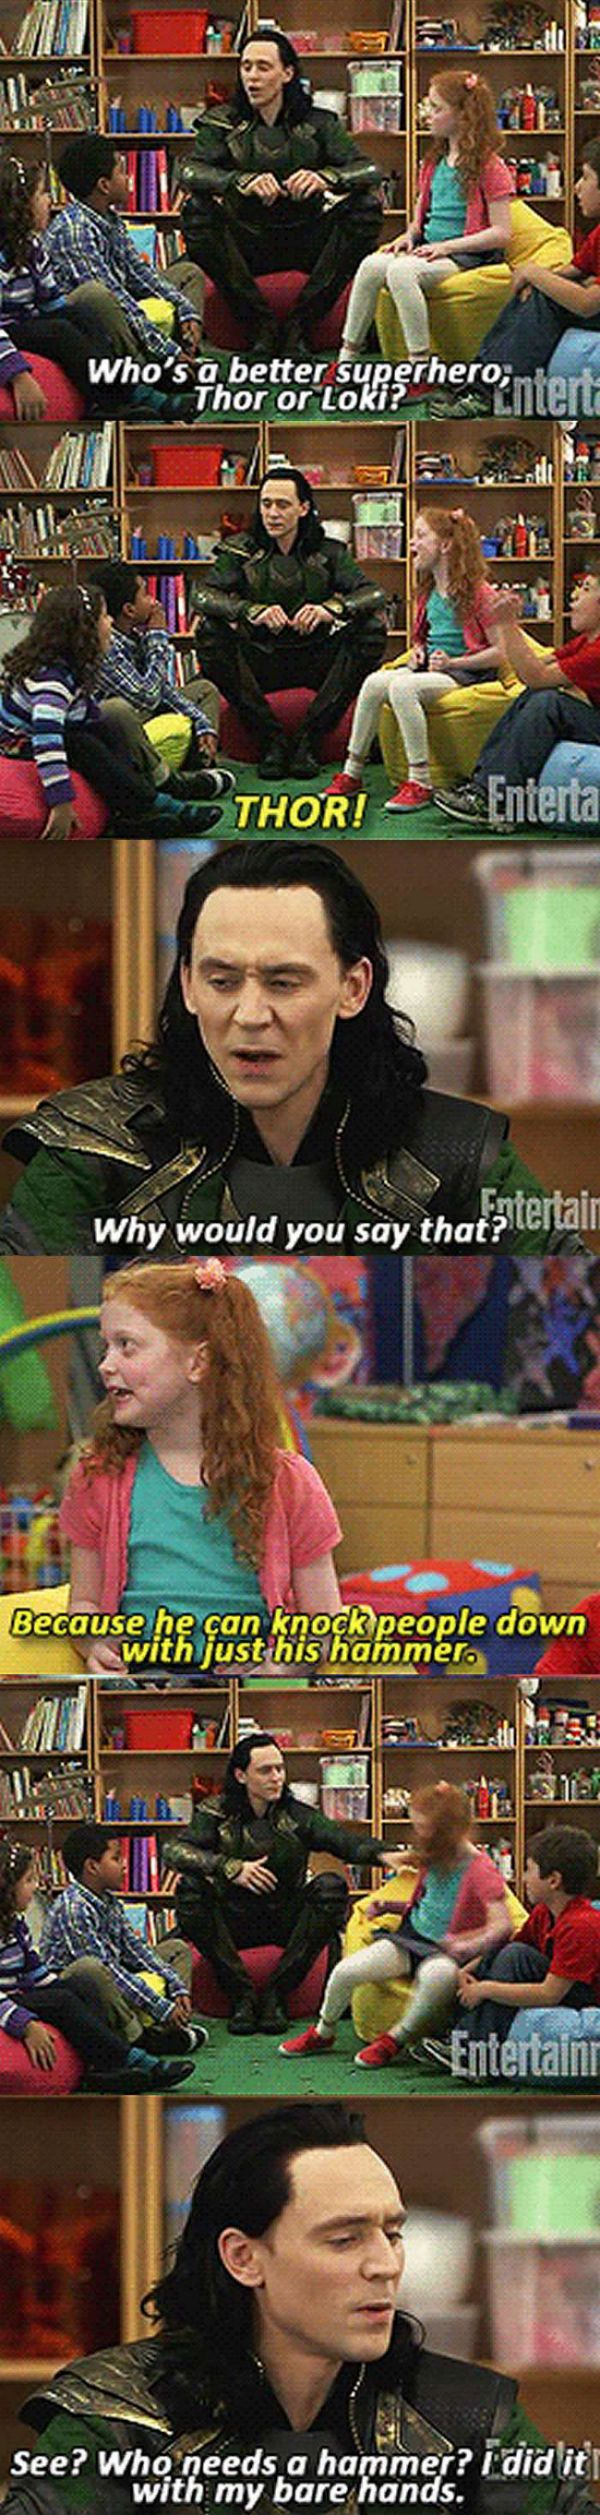 and you know Tom's heart broke at having to shove a child. He probably apologized repeatedly to the little girl who was most likely unfazed.